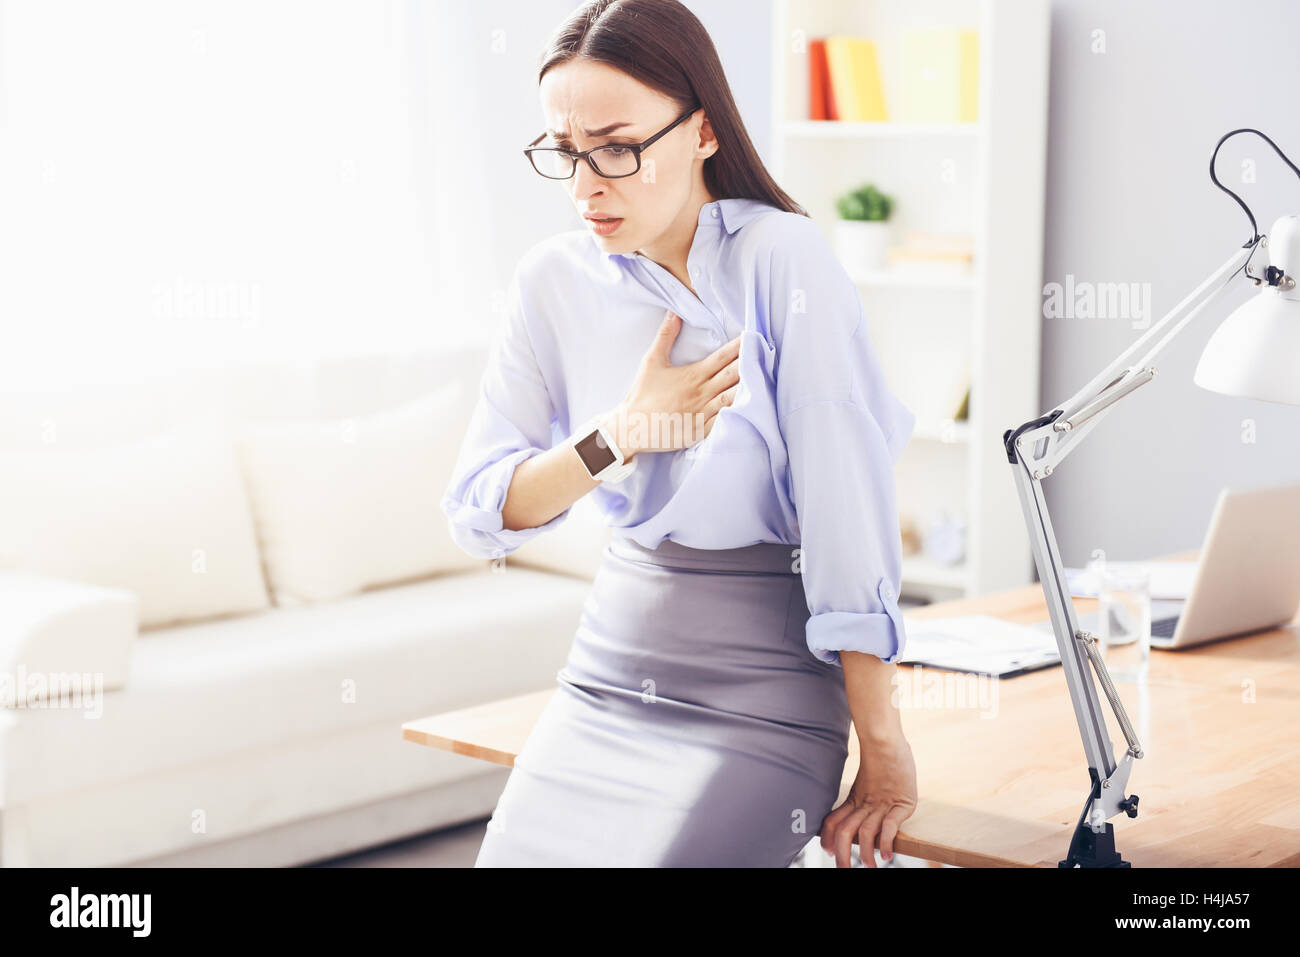 Pretty young woman having heartache and leaning on the table. - Stock Image